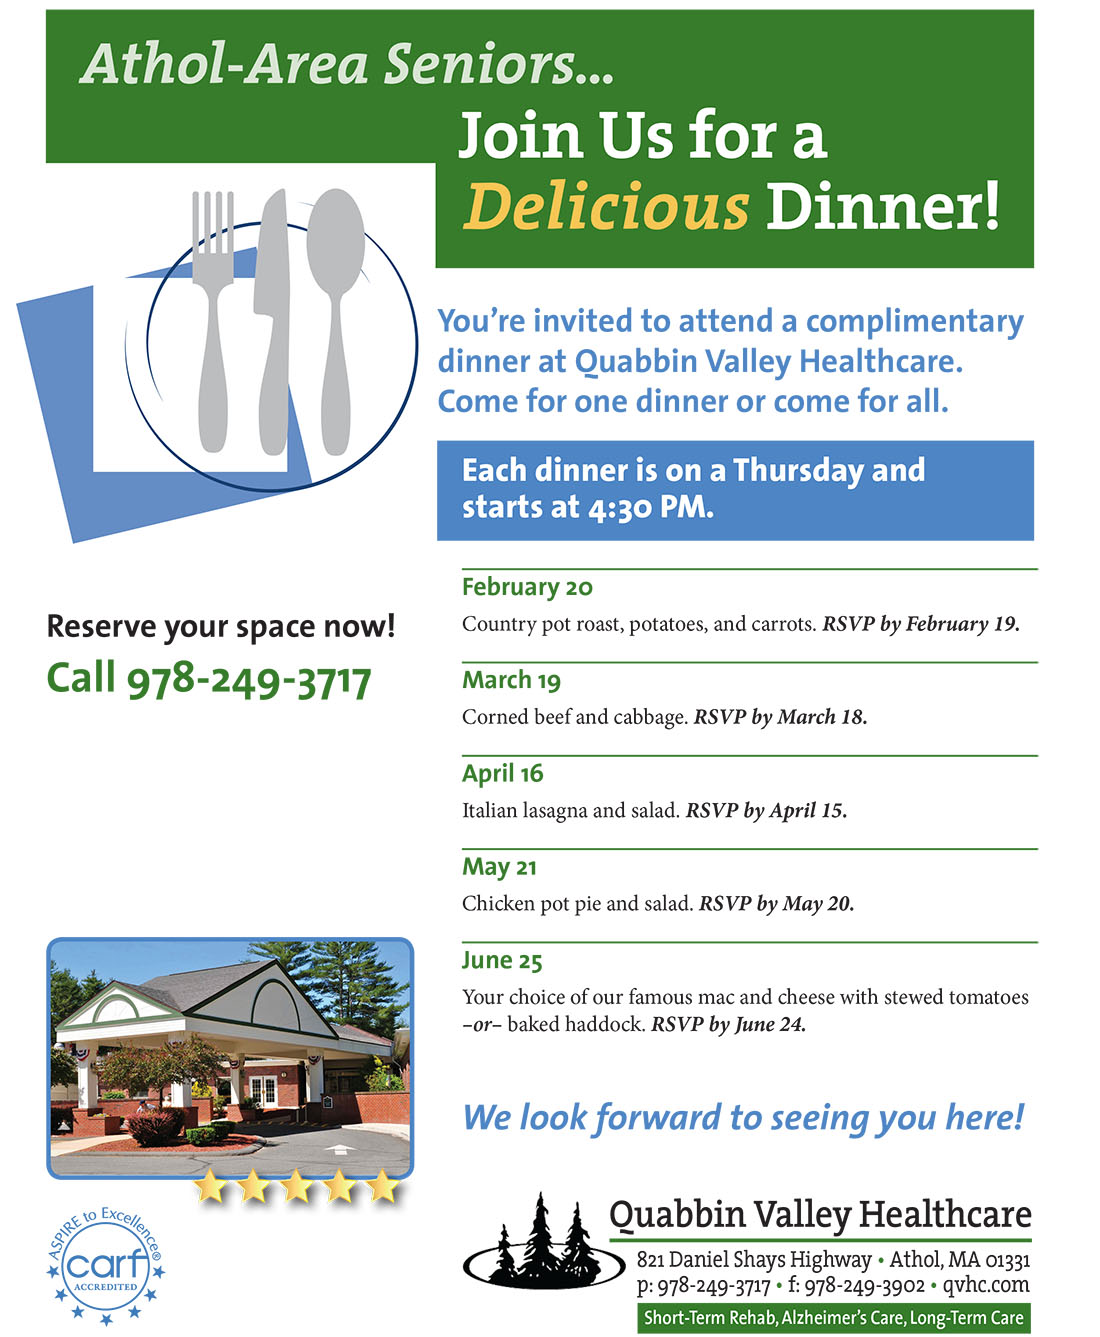 Join us for a delicious complimentary dinner!